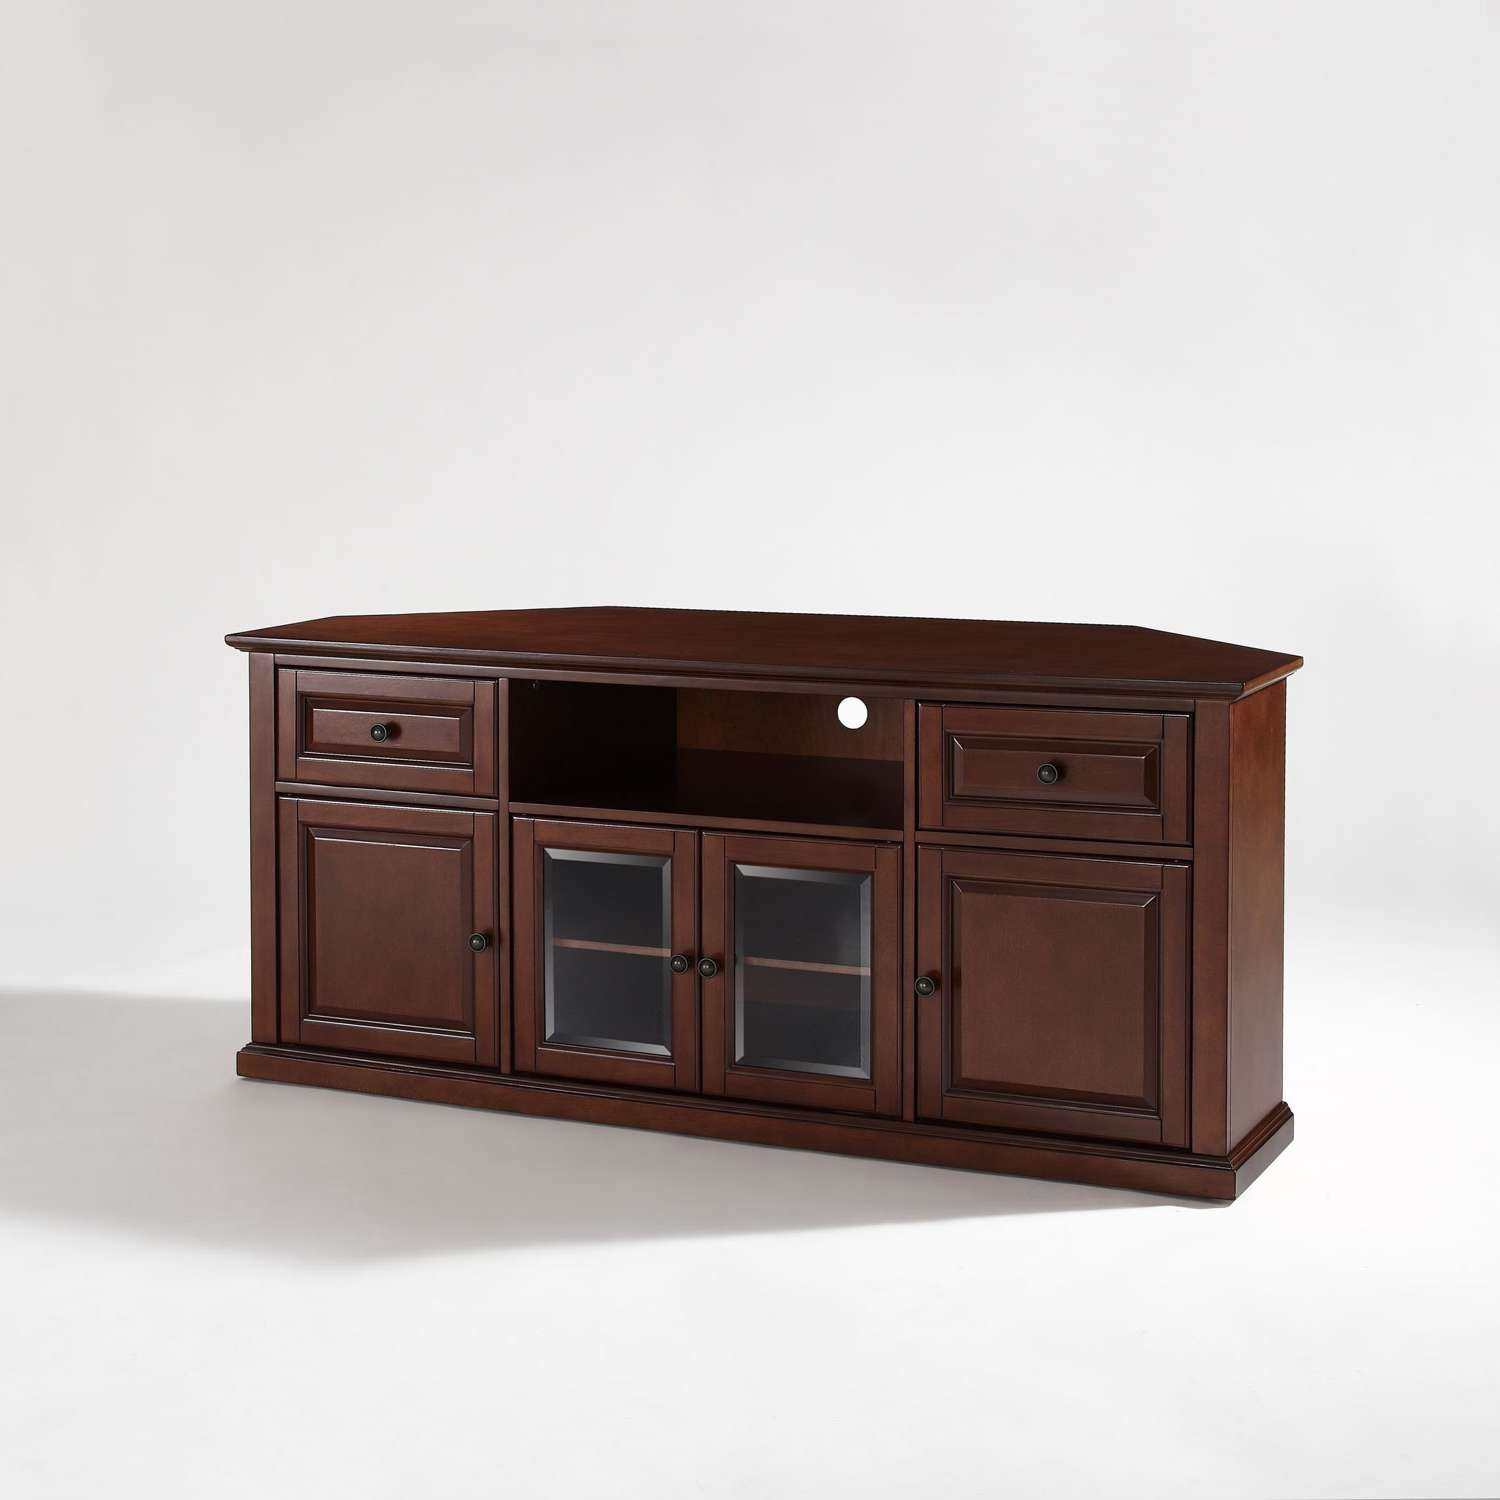 Corner Tv Cabinets Tv Stands And Cabinets | Bellacor For Tv Stands With Rounded Corners (View 1 of 15)